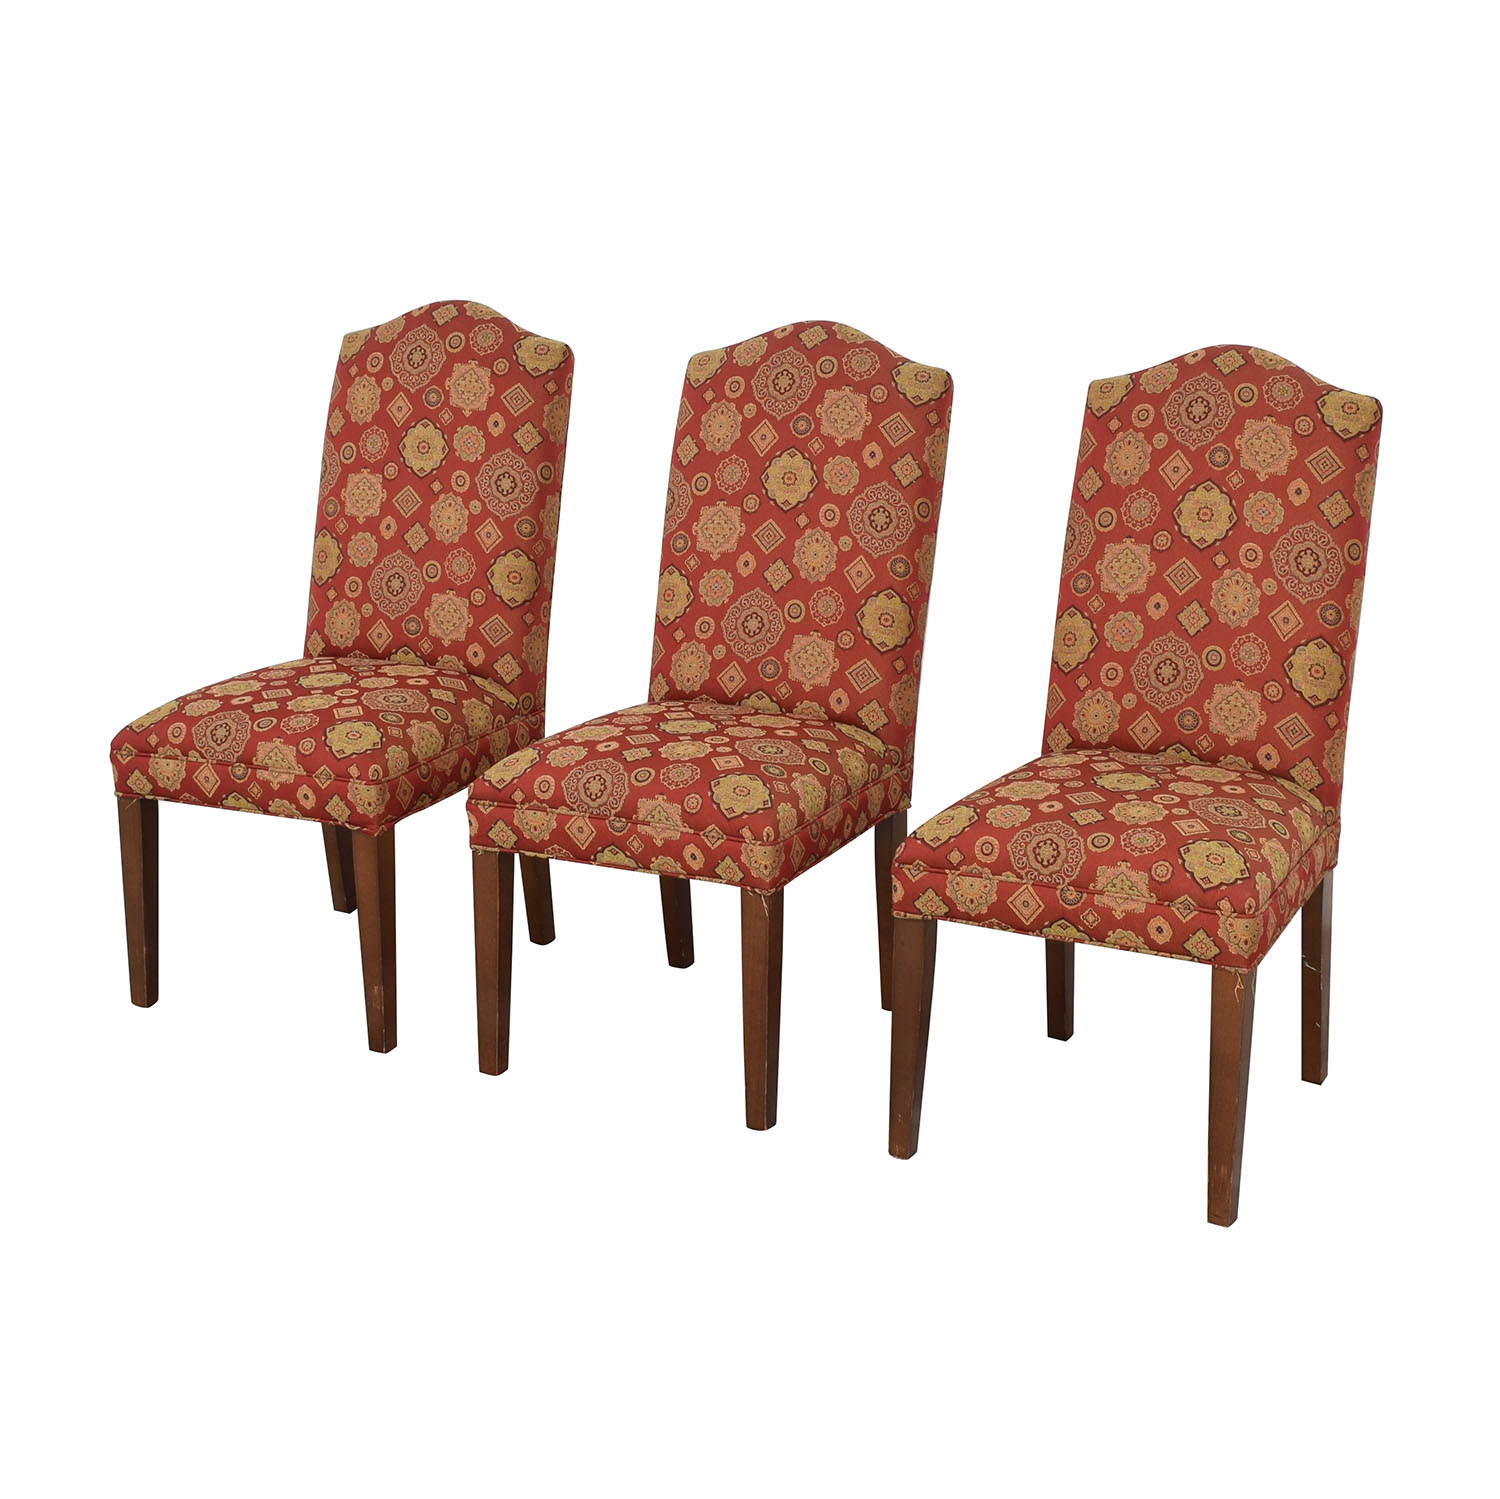 Ethan Allen Ethan Allen Upholstered Dining Chairs ct